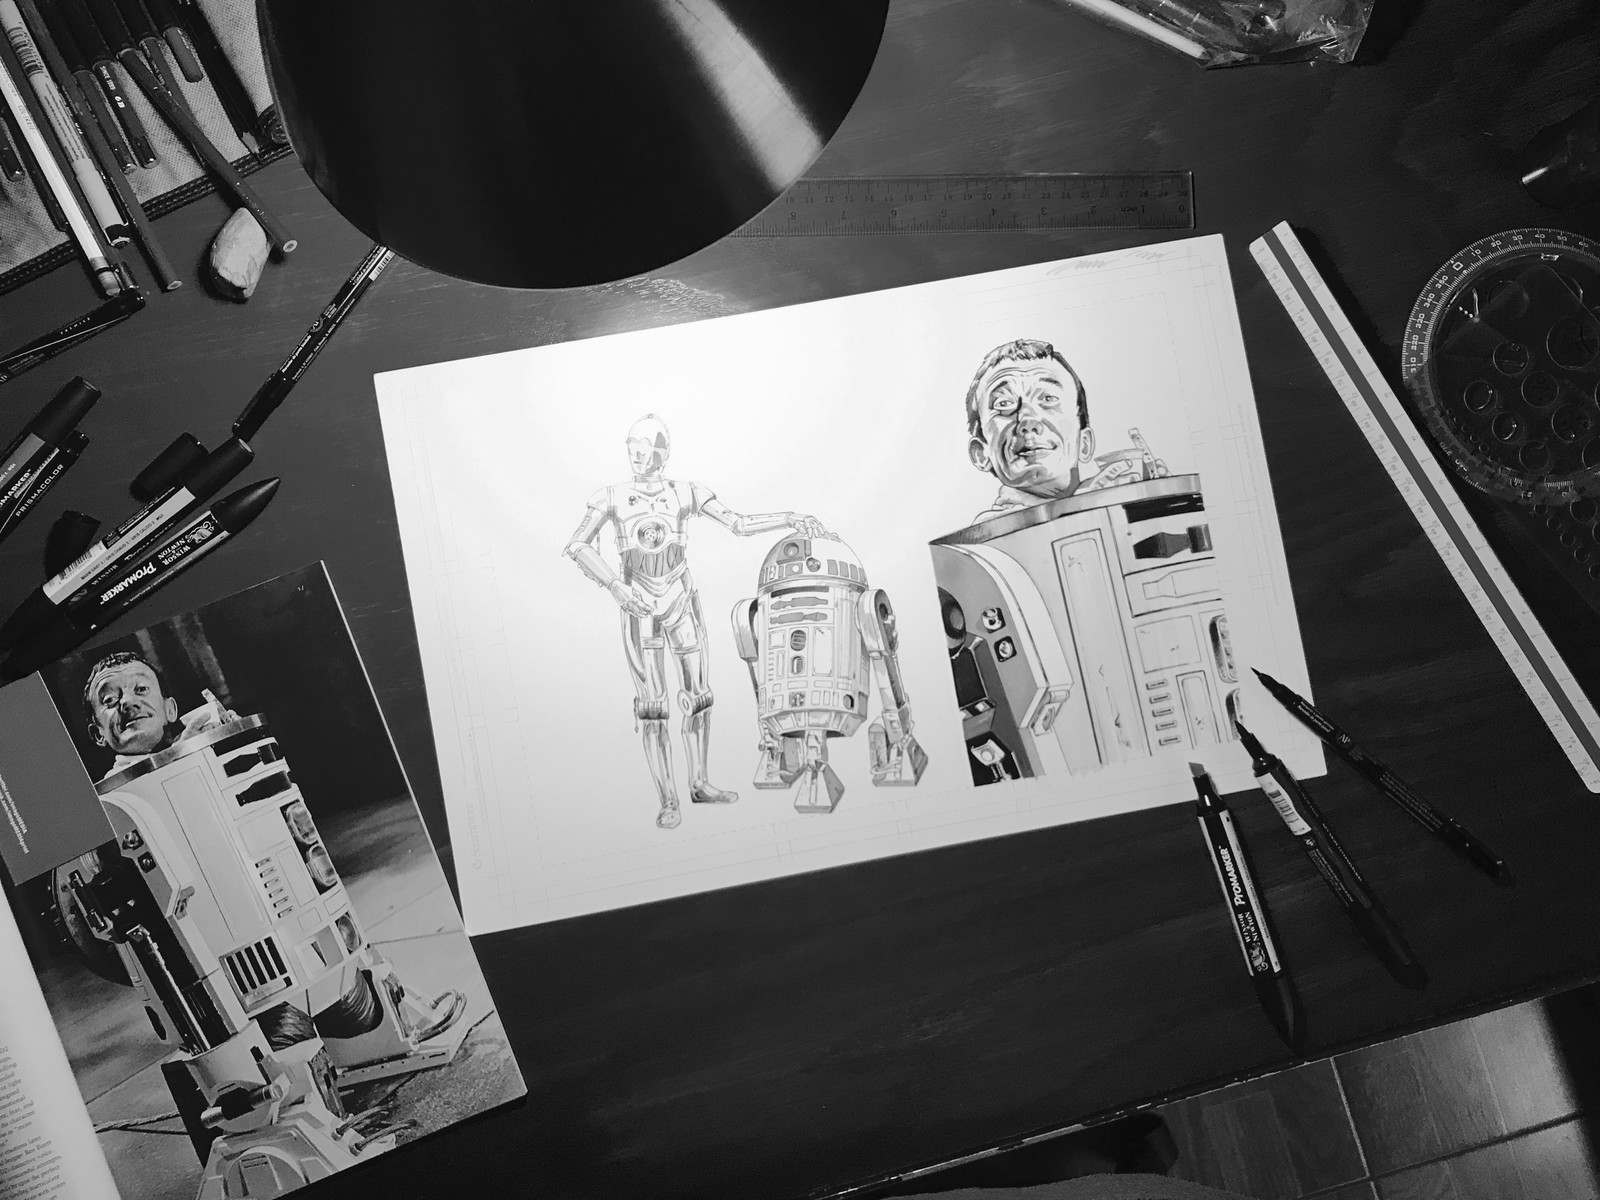 Kenny Baker: The Man Behind R2-D2